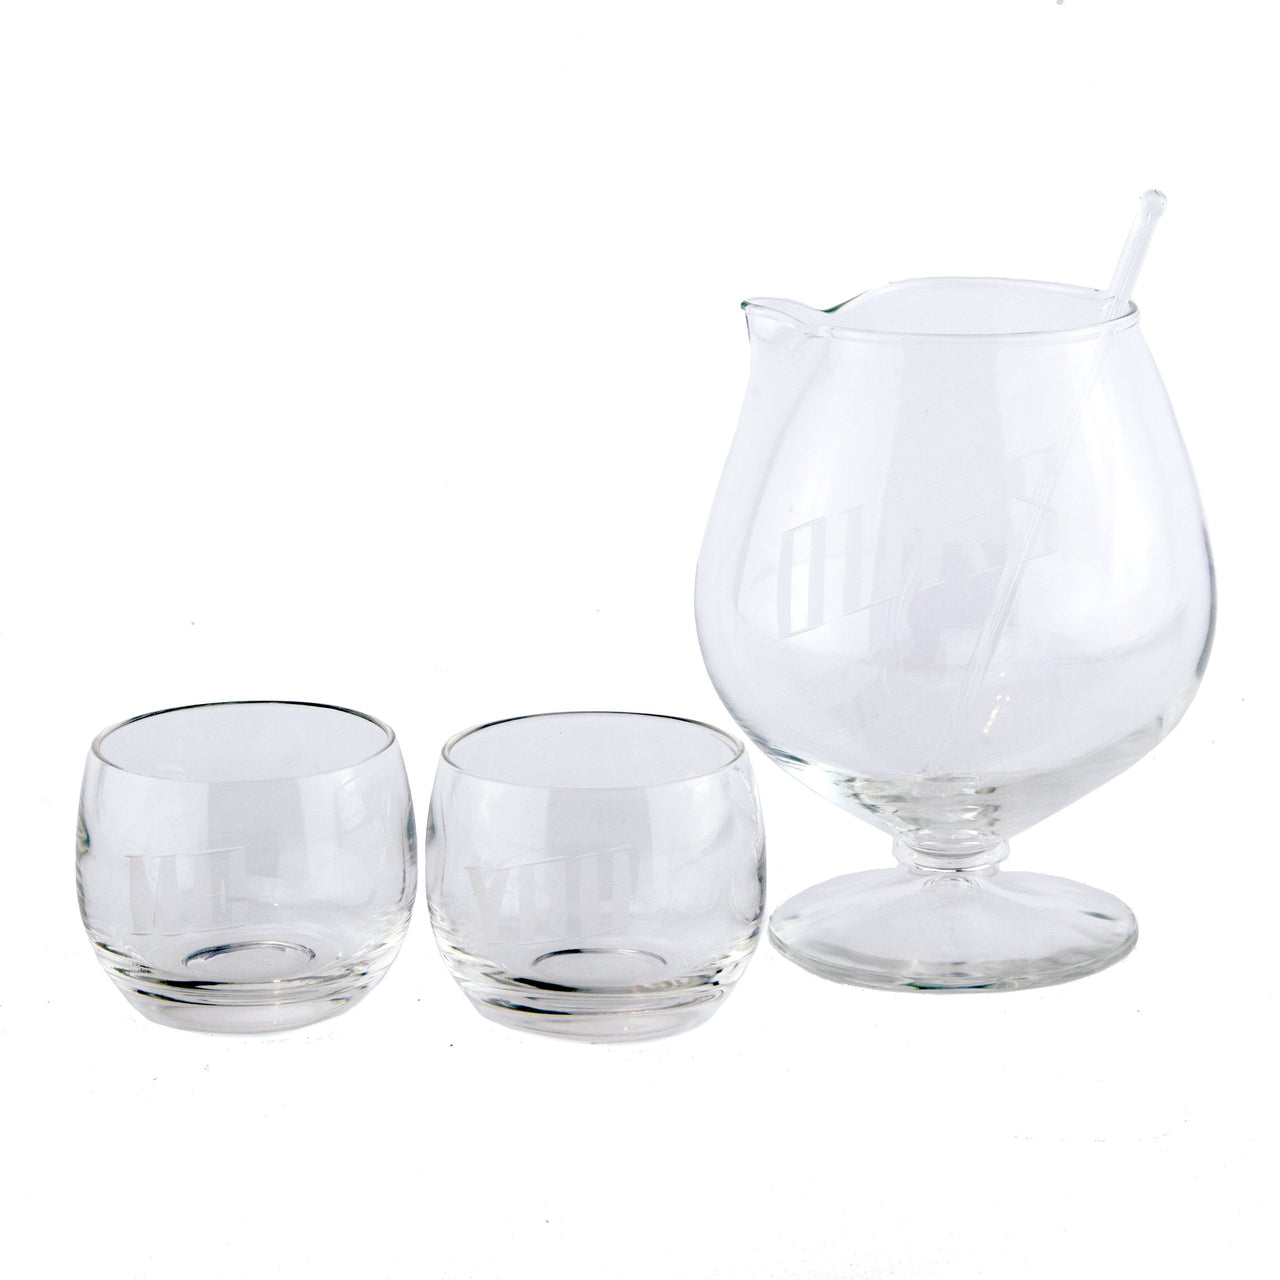 You, Me & Ours Etched Cocktail Pitcher Set | The Hour Vintage